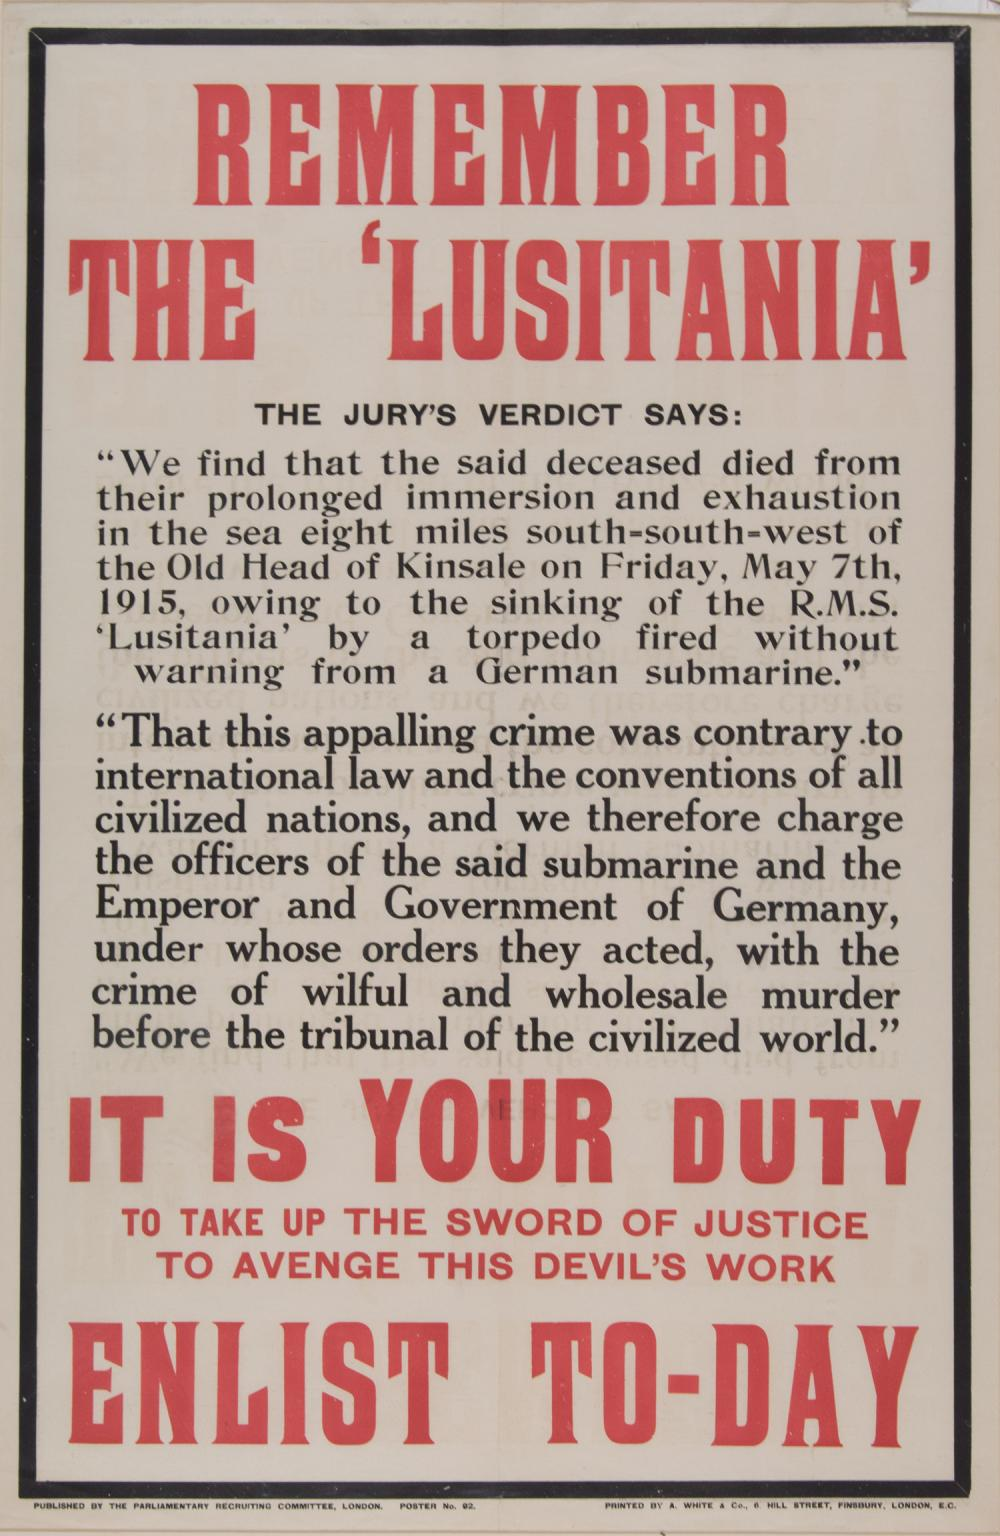 BRITISH 'REMEMBER THE LUSITANIA!' ENLISTMENT POSTER